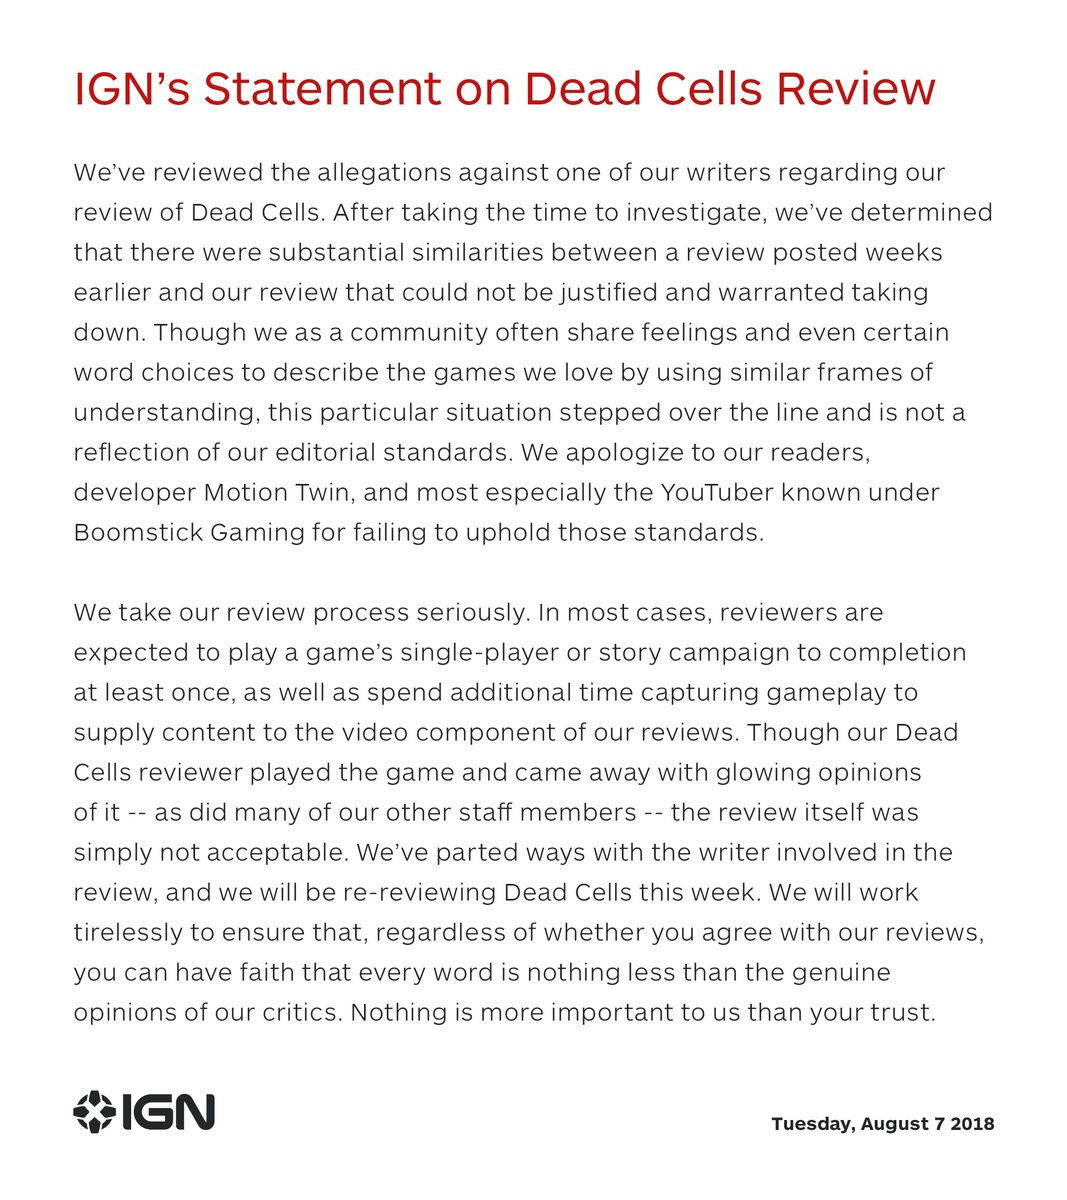 [Update] IGN Removes Dead Cells Review After Accusations of Plagiarism